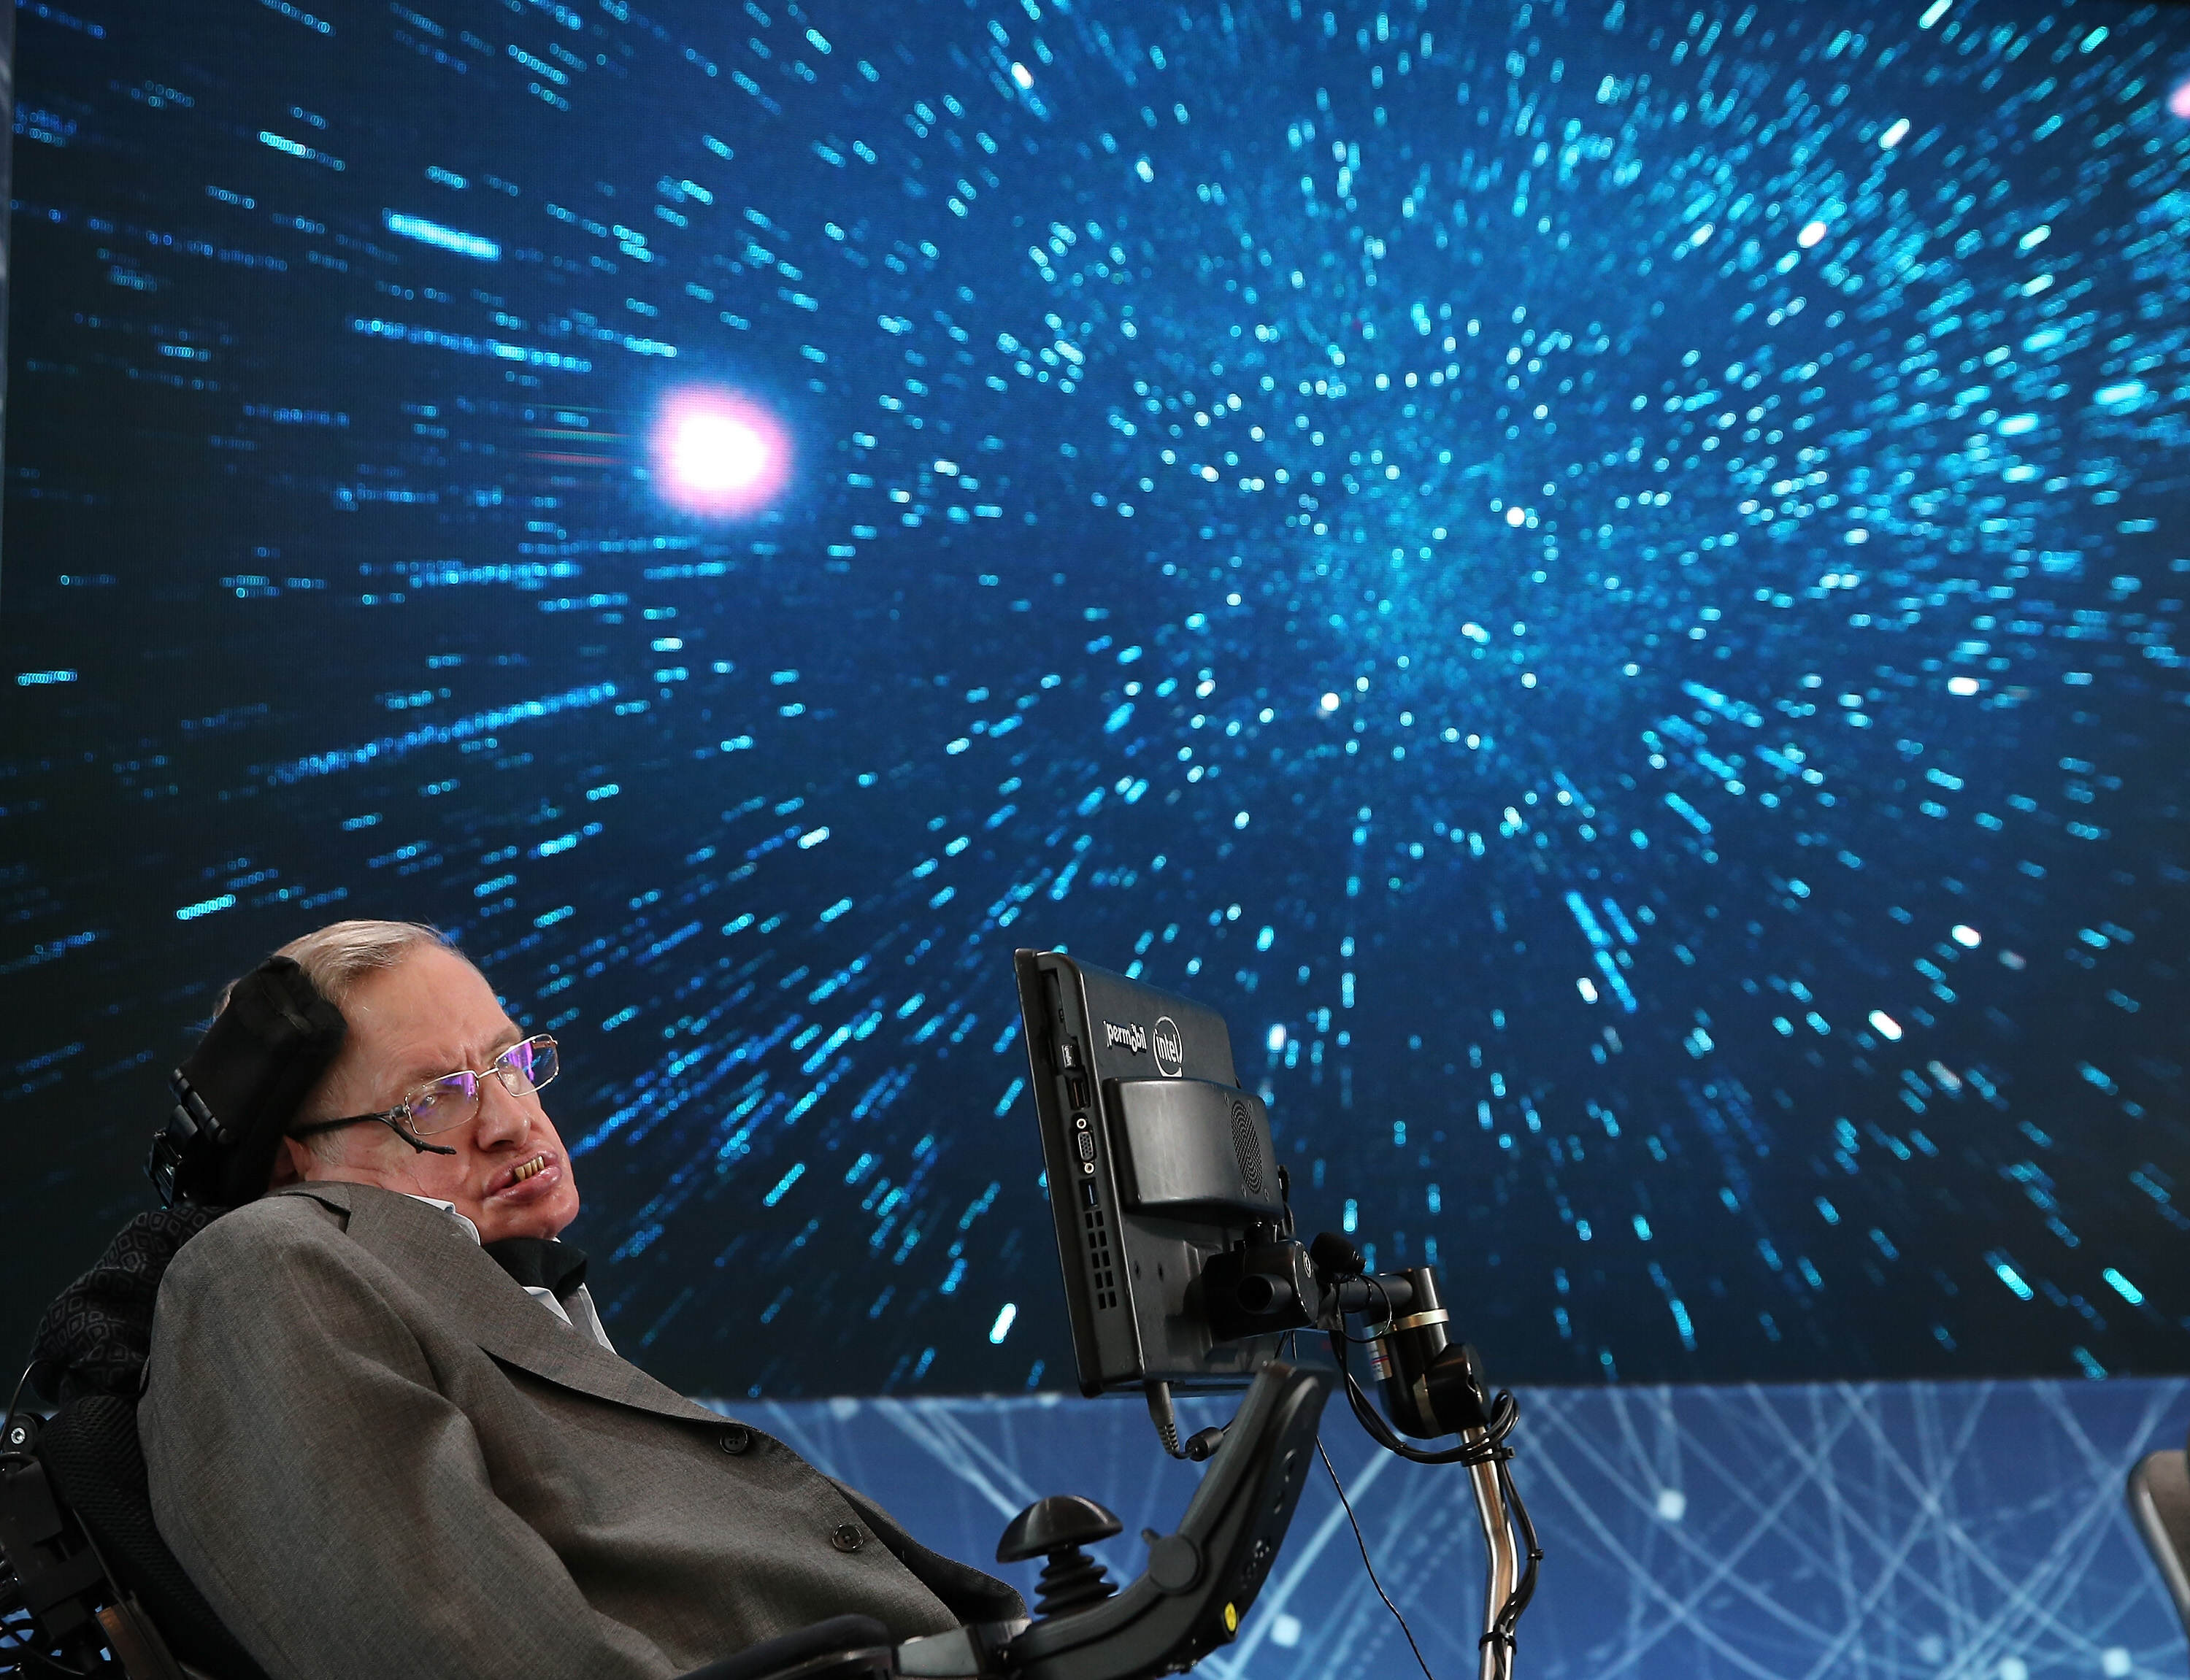 Stephen Hawking And Mark Zuckerberg Team Up To Find Aliens GettyImages 520676582